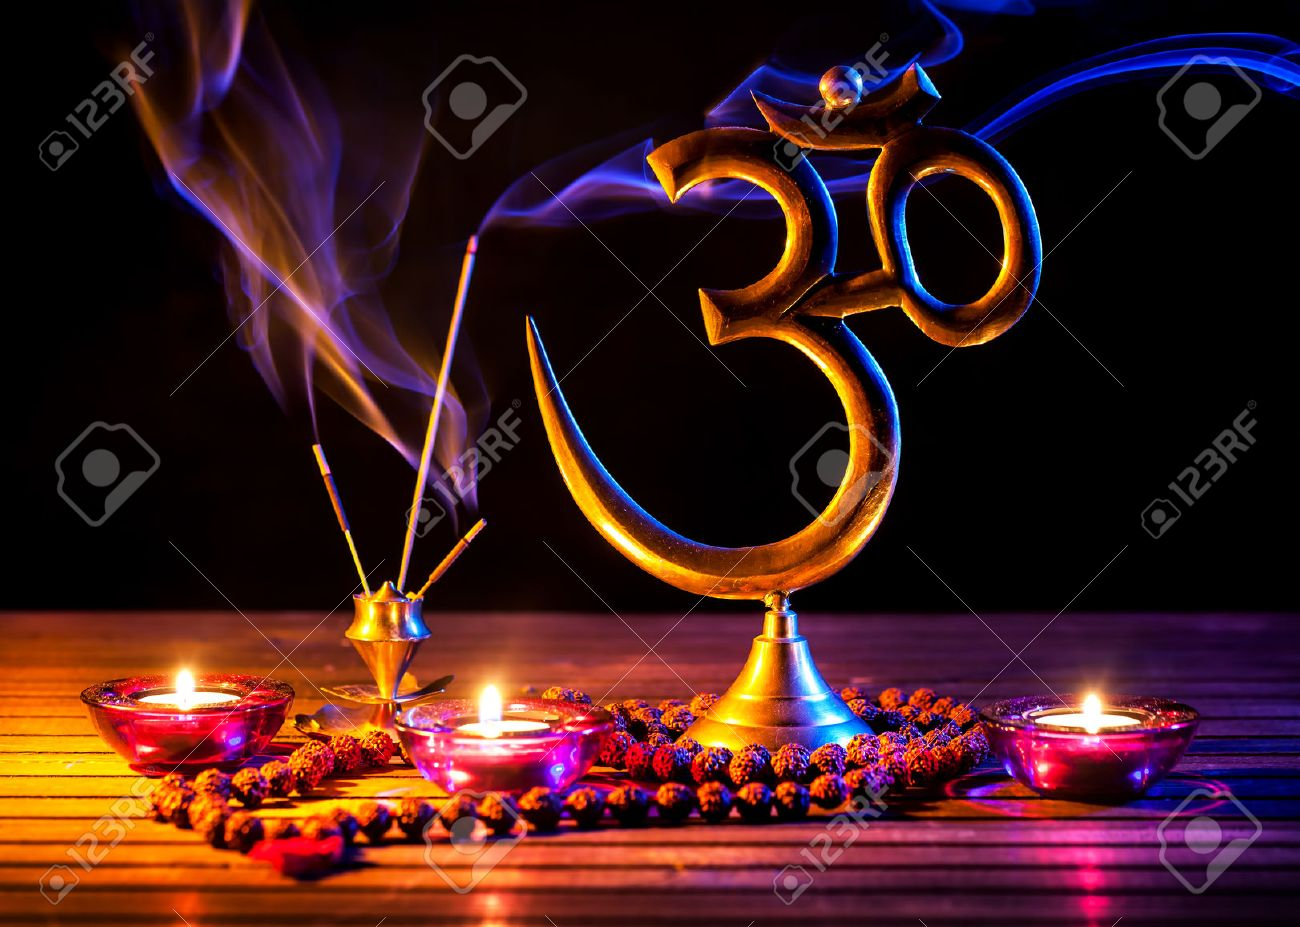 Om symbol, incense smoke, candle and japa mala on wooden table at black background Stock Photo - 46490811